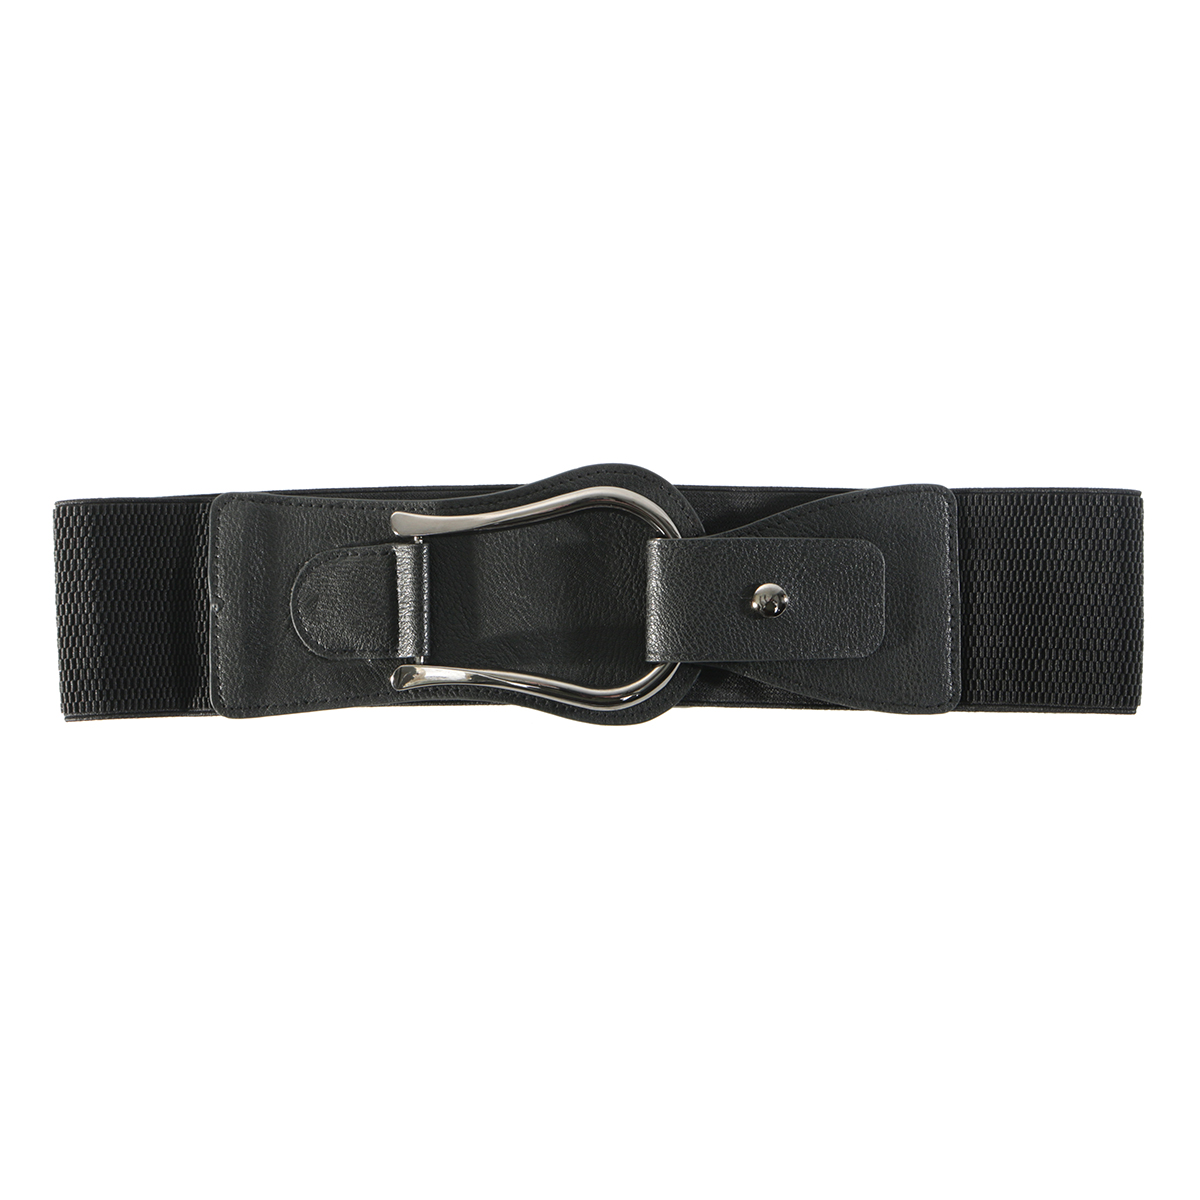 "BLK 31"" SNAP BELT"